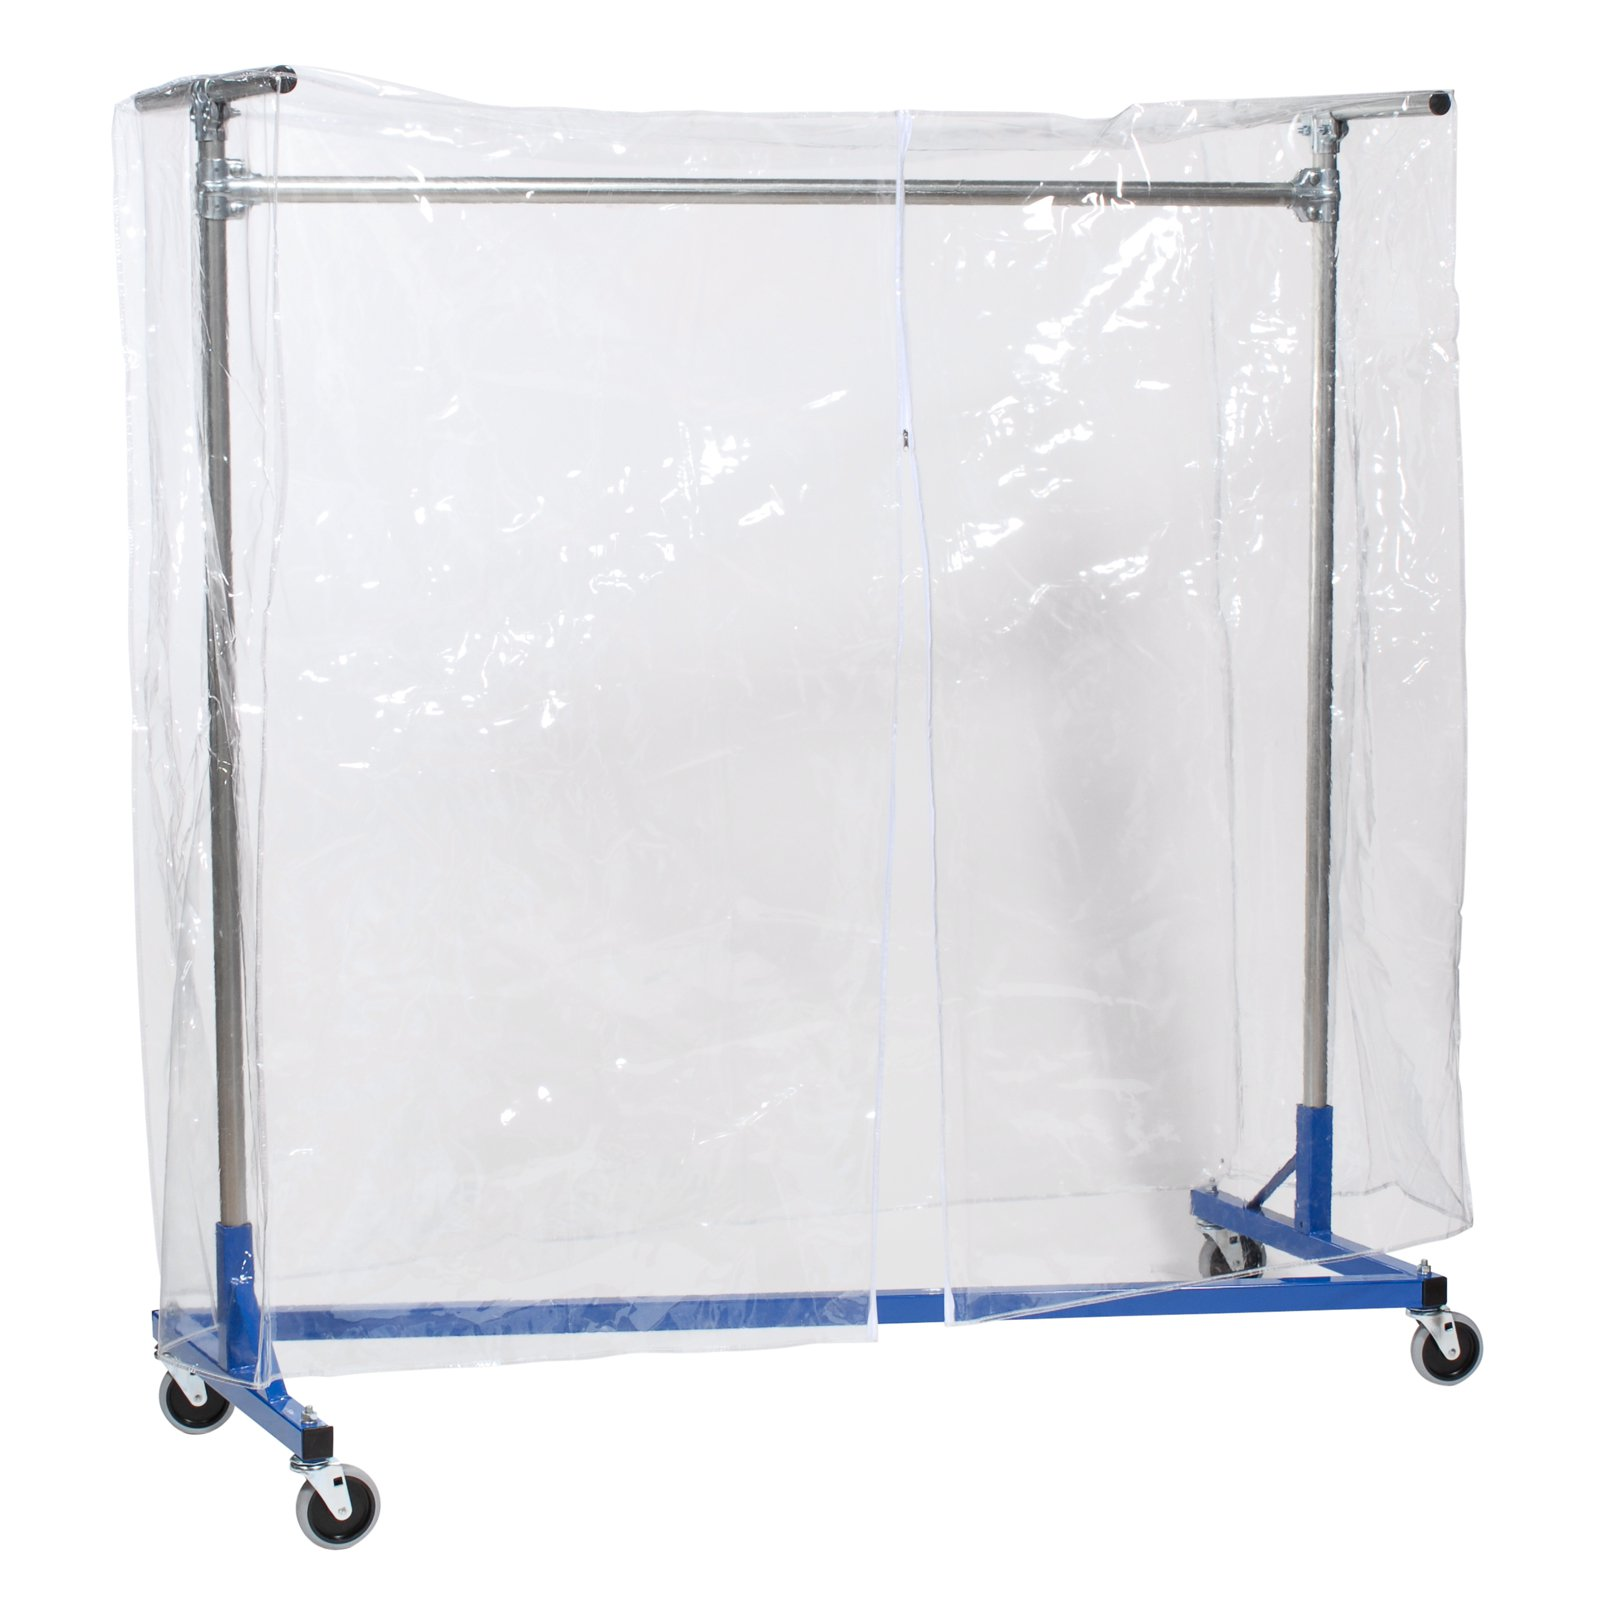 Garment Rack Cover-72 Inches Tall by Quality Fabricators